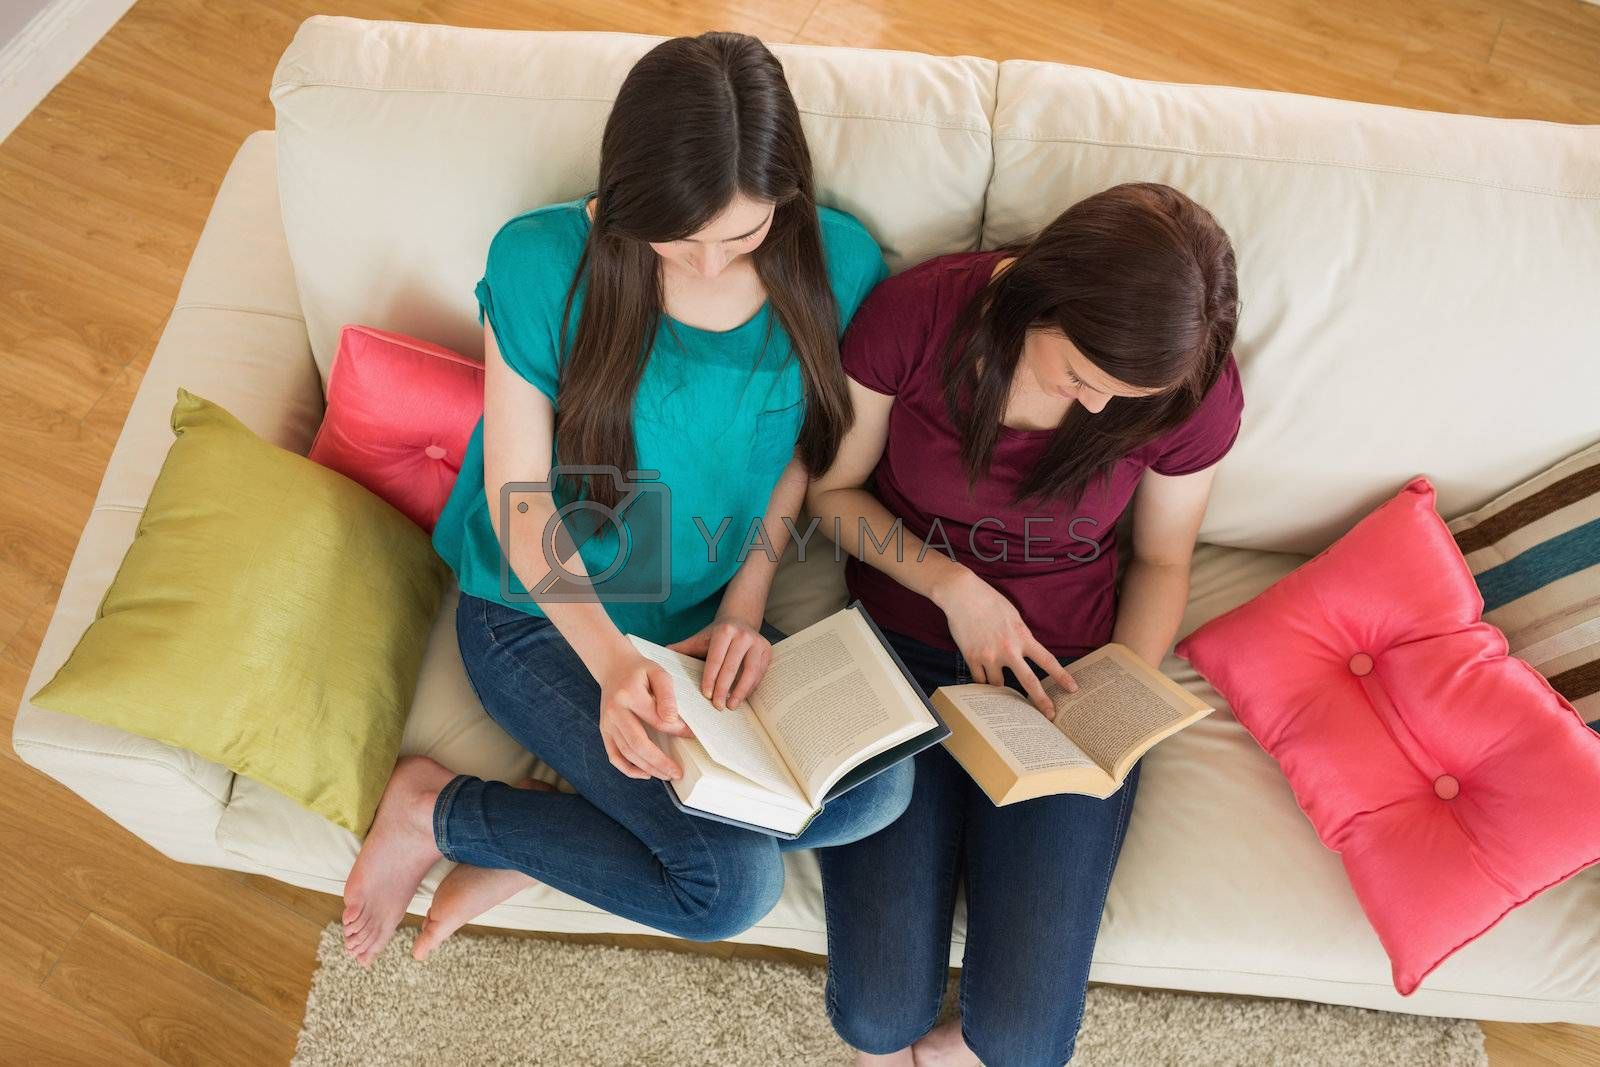 Two friends reading books on the couch by Wavebreakmedia